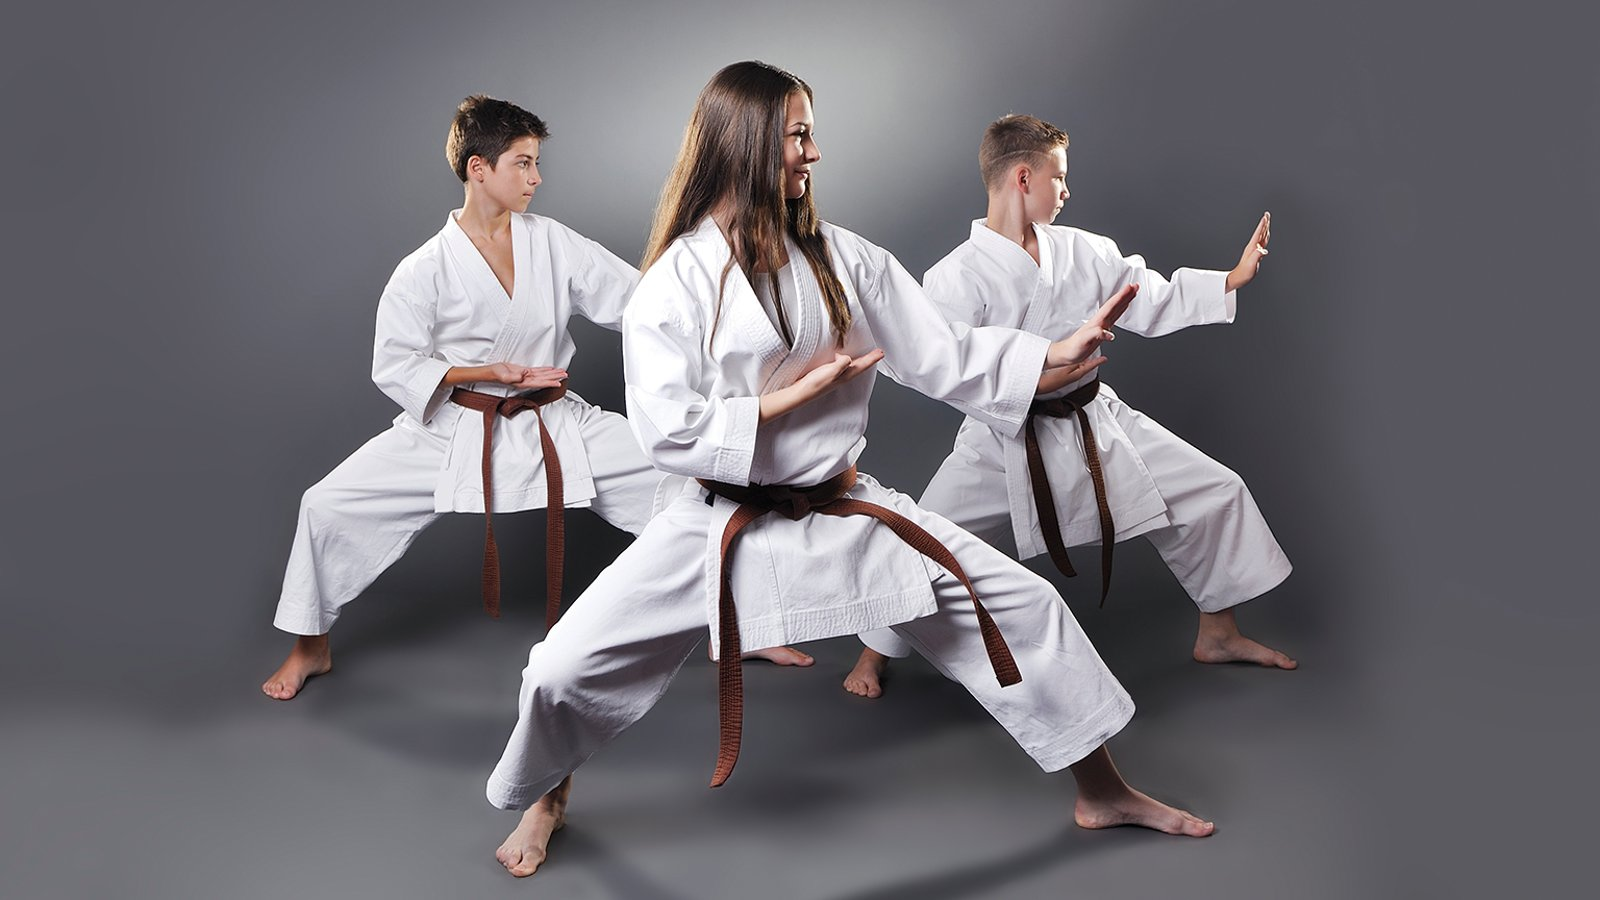 Karate: Fighting Stance and Mobility